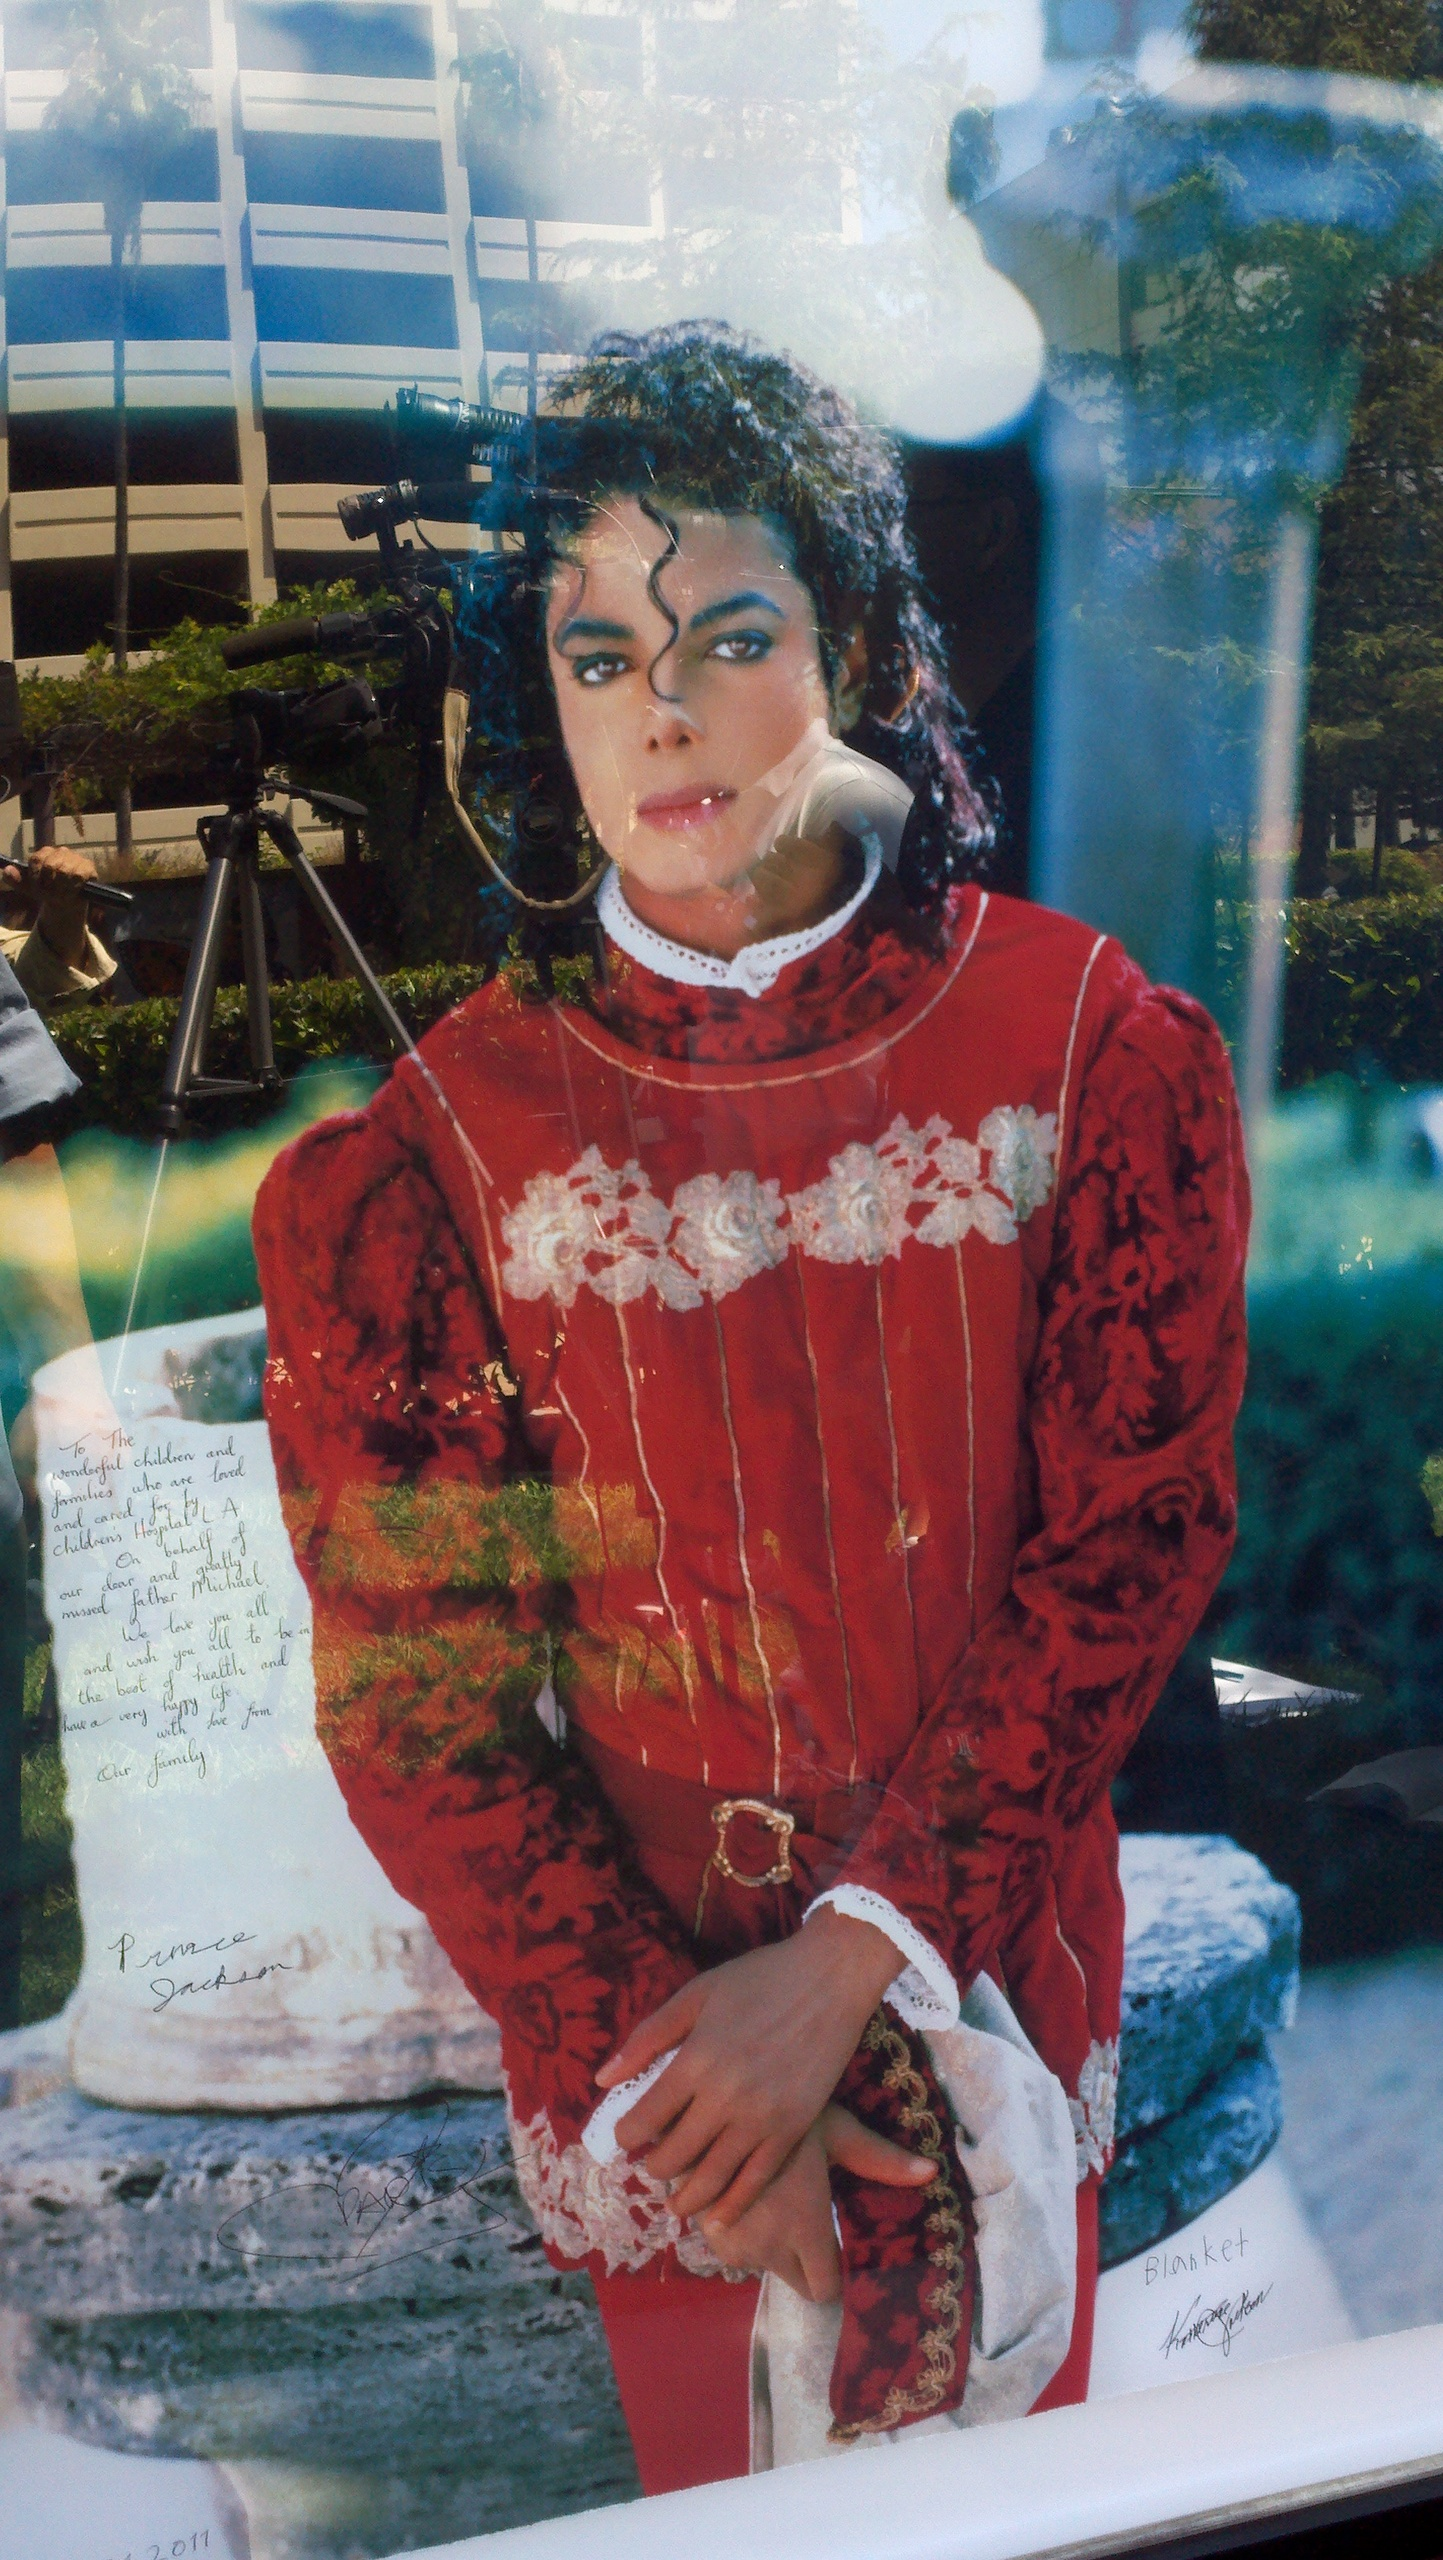 MJ's kids sign his picture